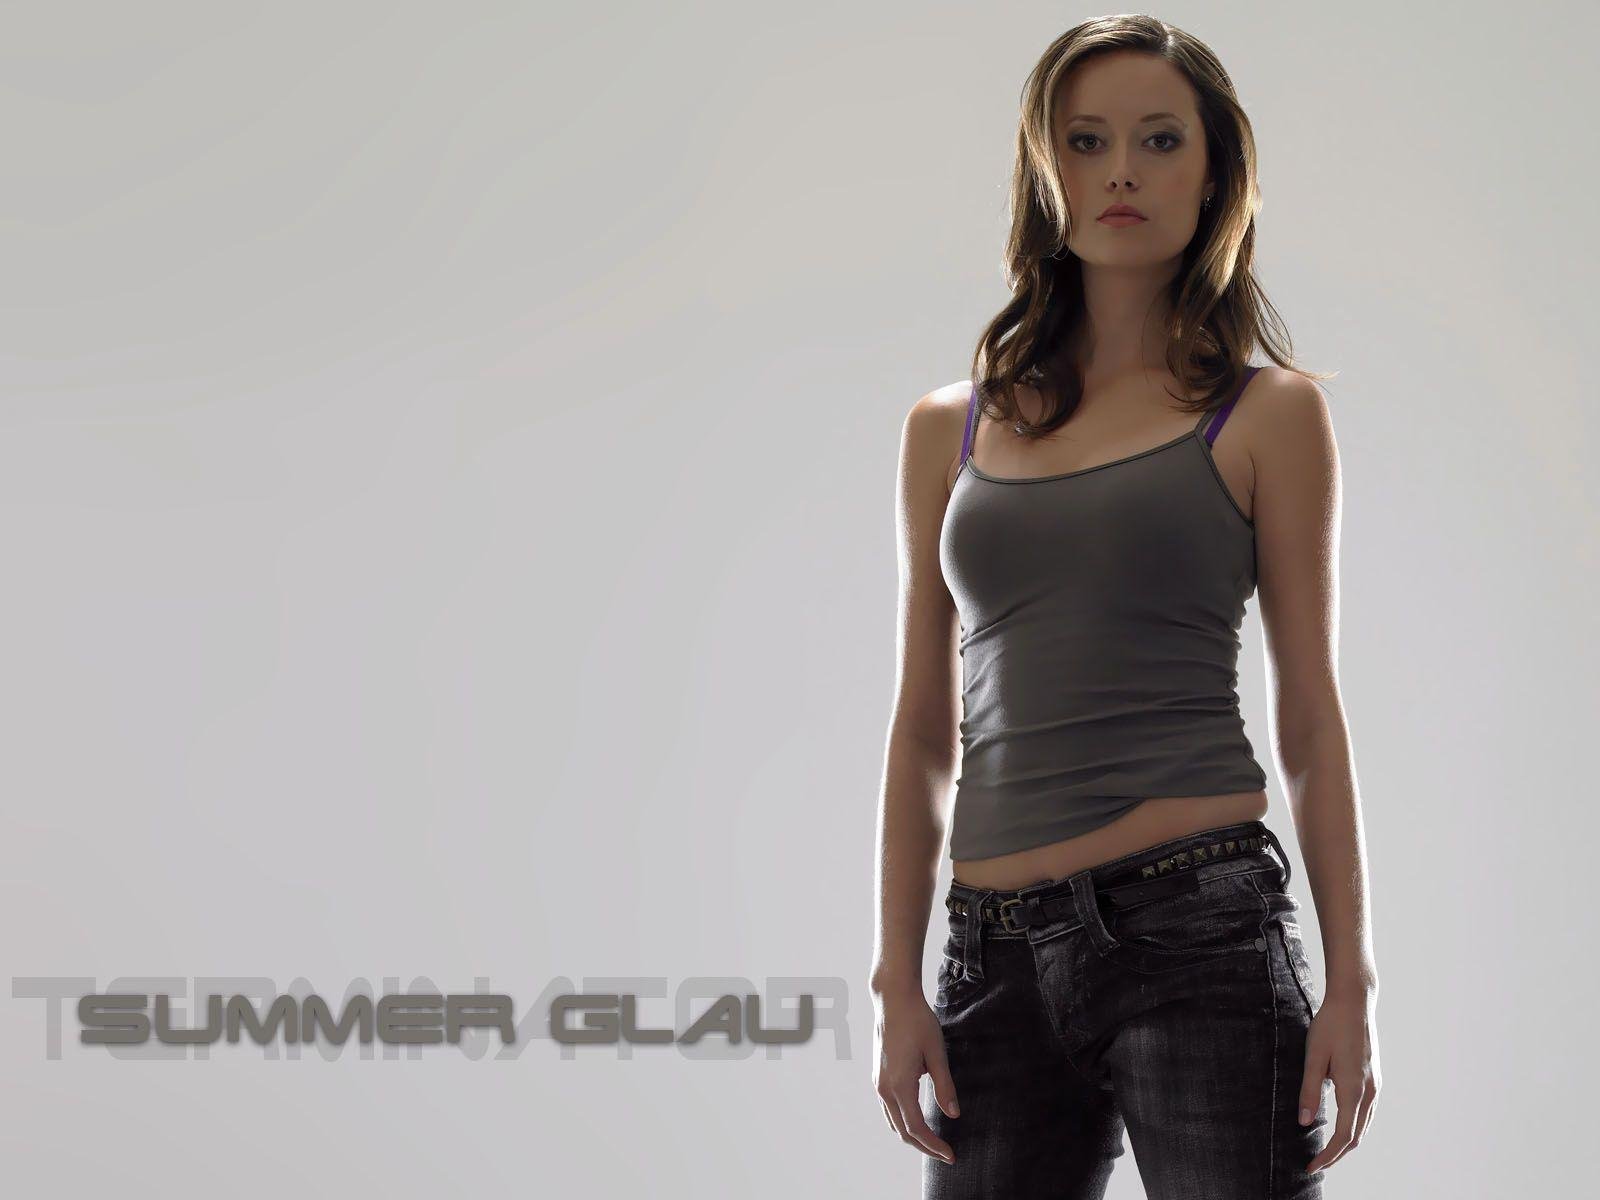 Summer Glau - Actresses &- People Background Wallpapers on Desktop ...